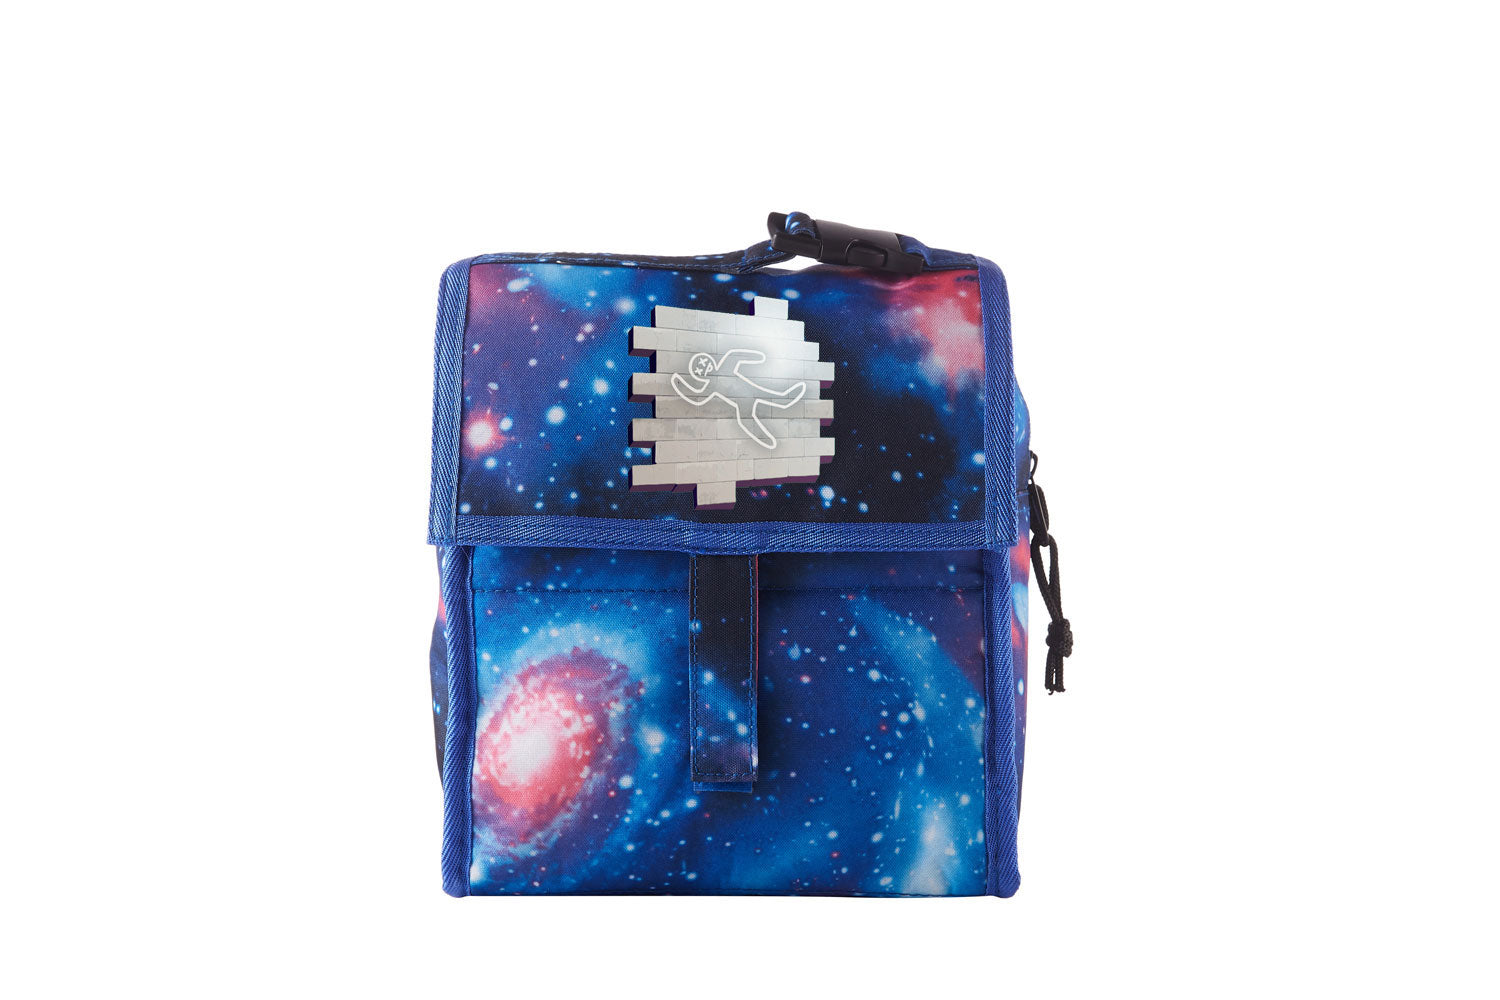 Battle Royale Sprays Chalk Outline Starry Sky Freezable Lunch Bag with Zip Closure